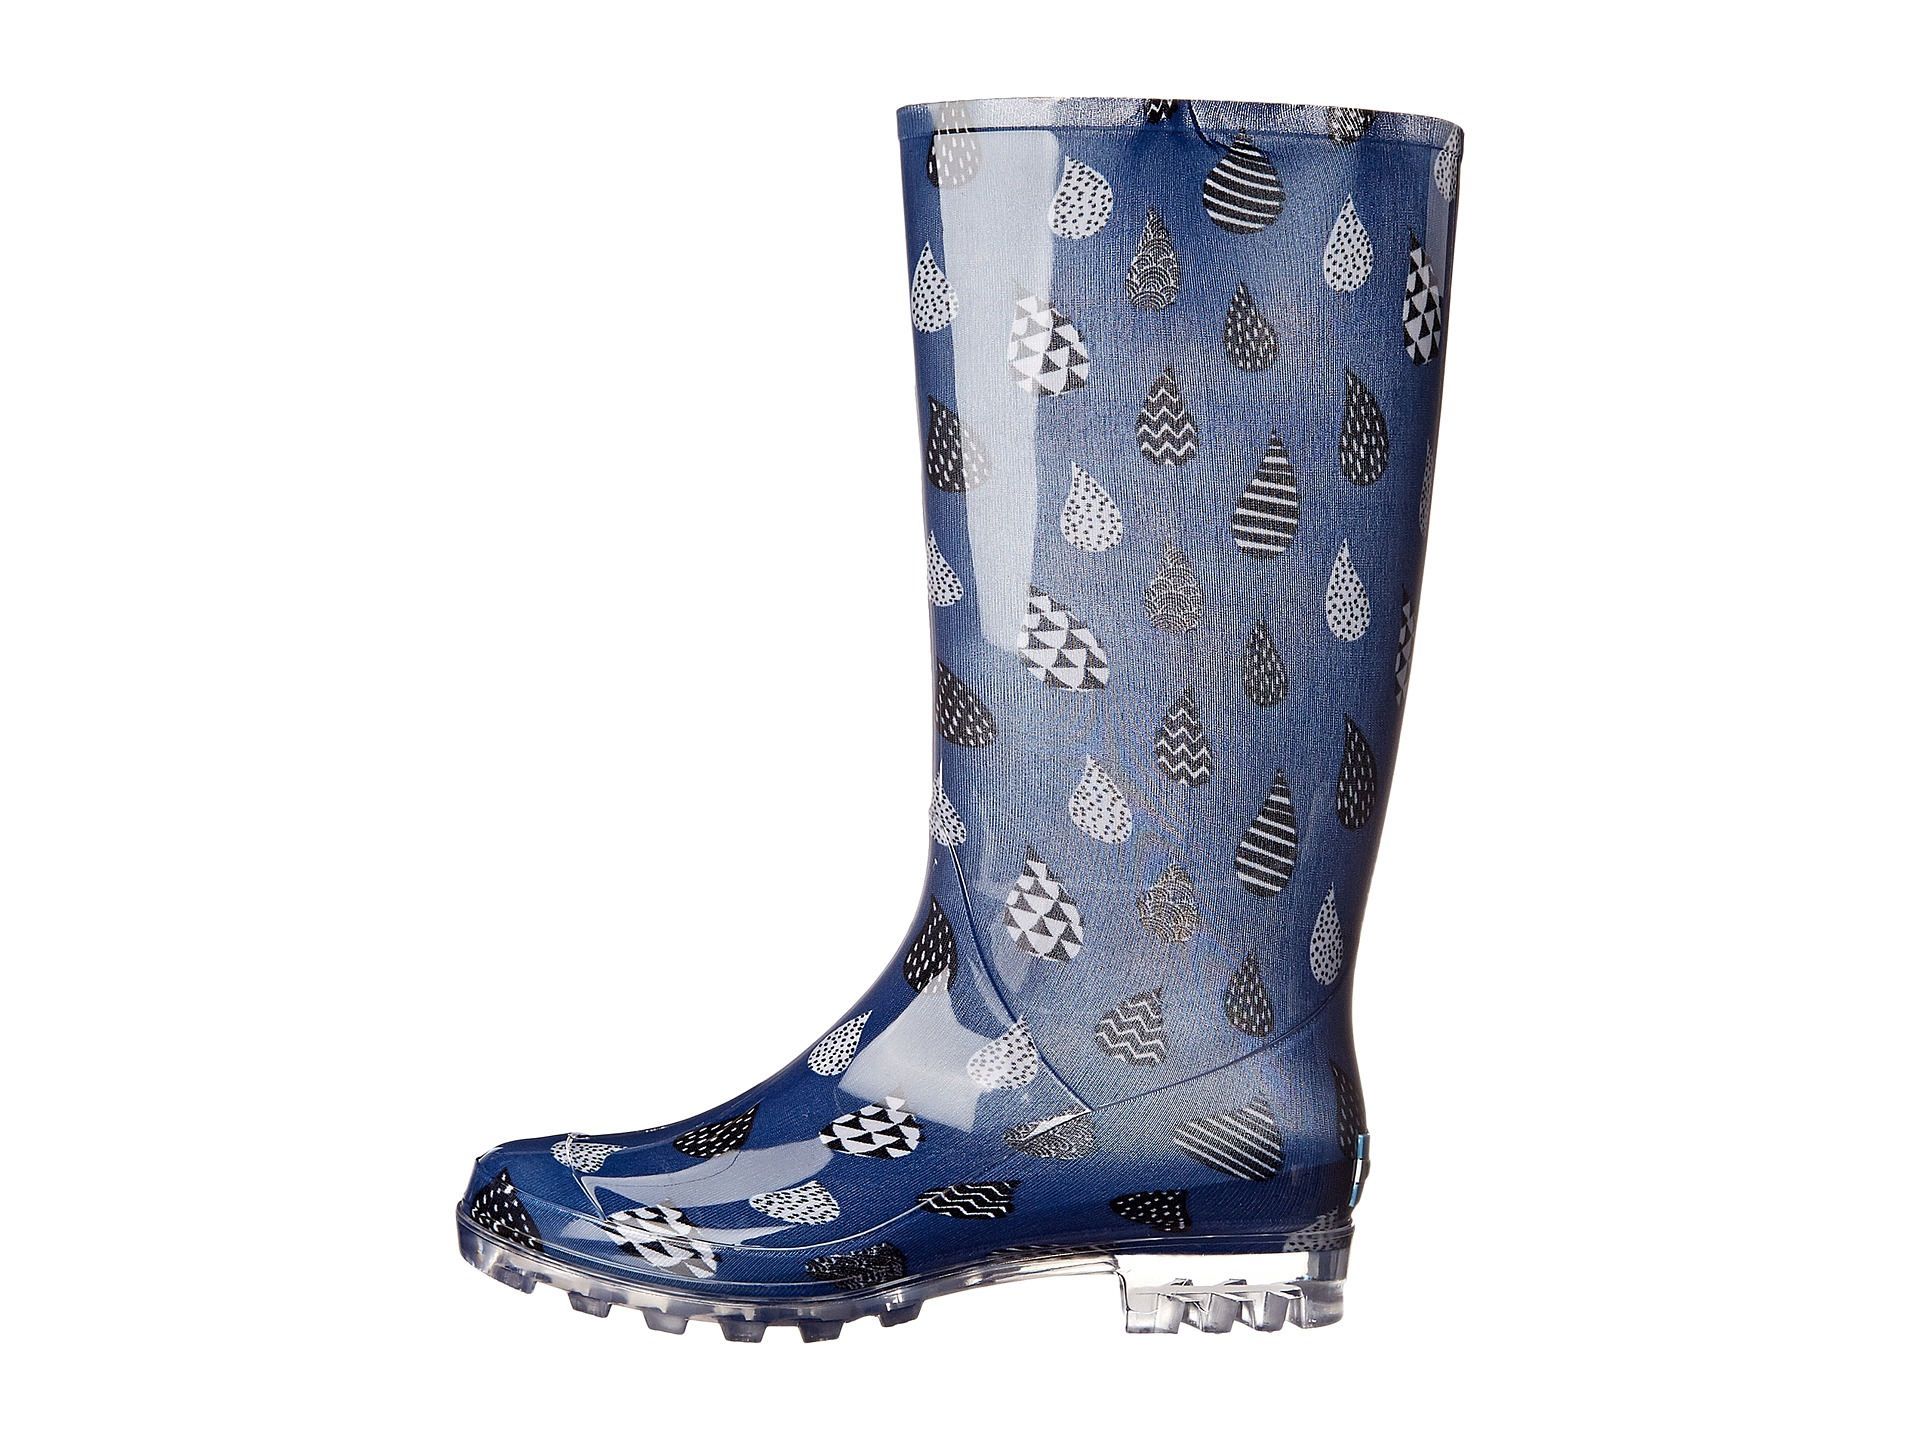 womens rain boots zappos with fantastic creativity